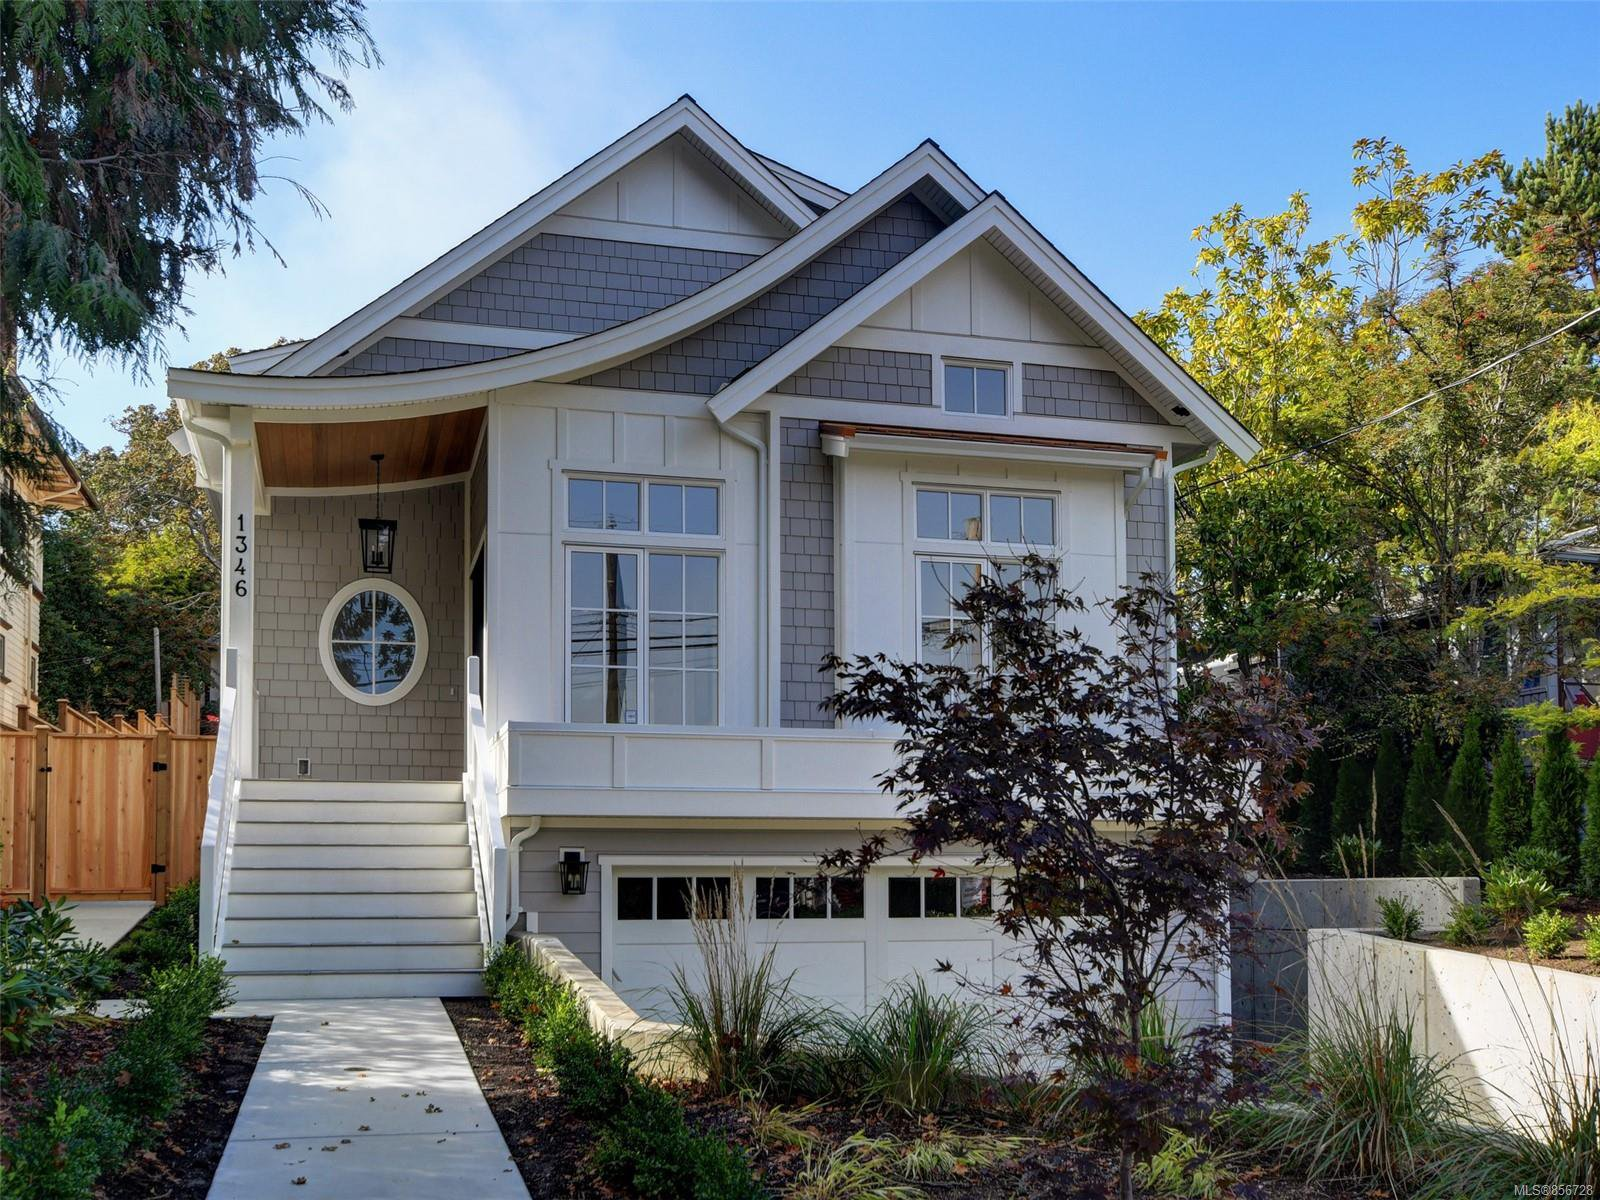 Main Photo: 1346 Hampshire Rd in : OB South Oak Bay House for sale (Oak Bay)  : MLS®# 856728